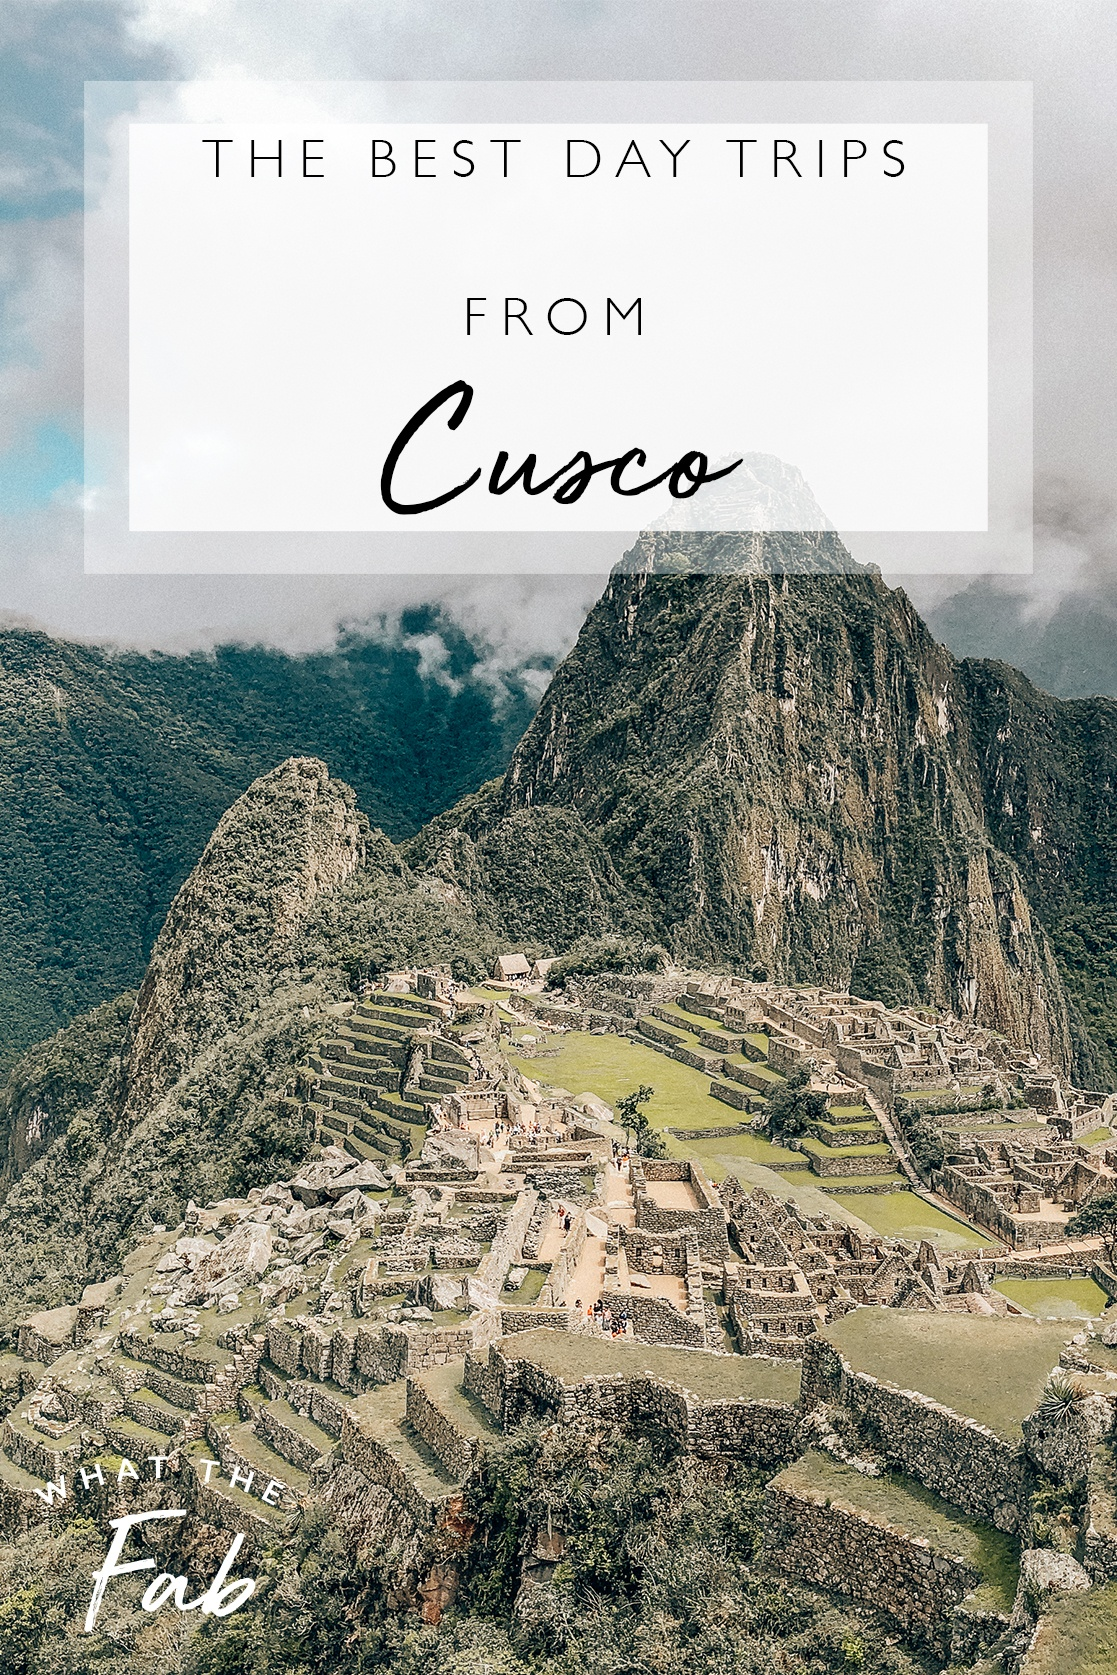 The best day trips from Cusco, by travel blogger What The Fab